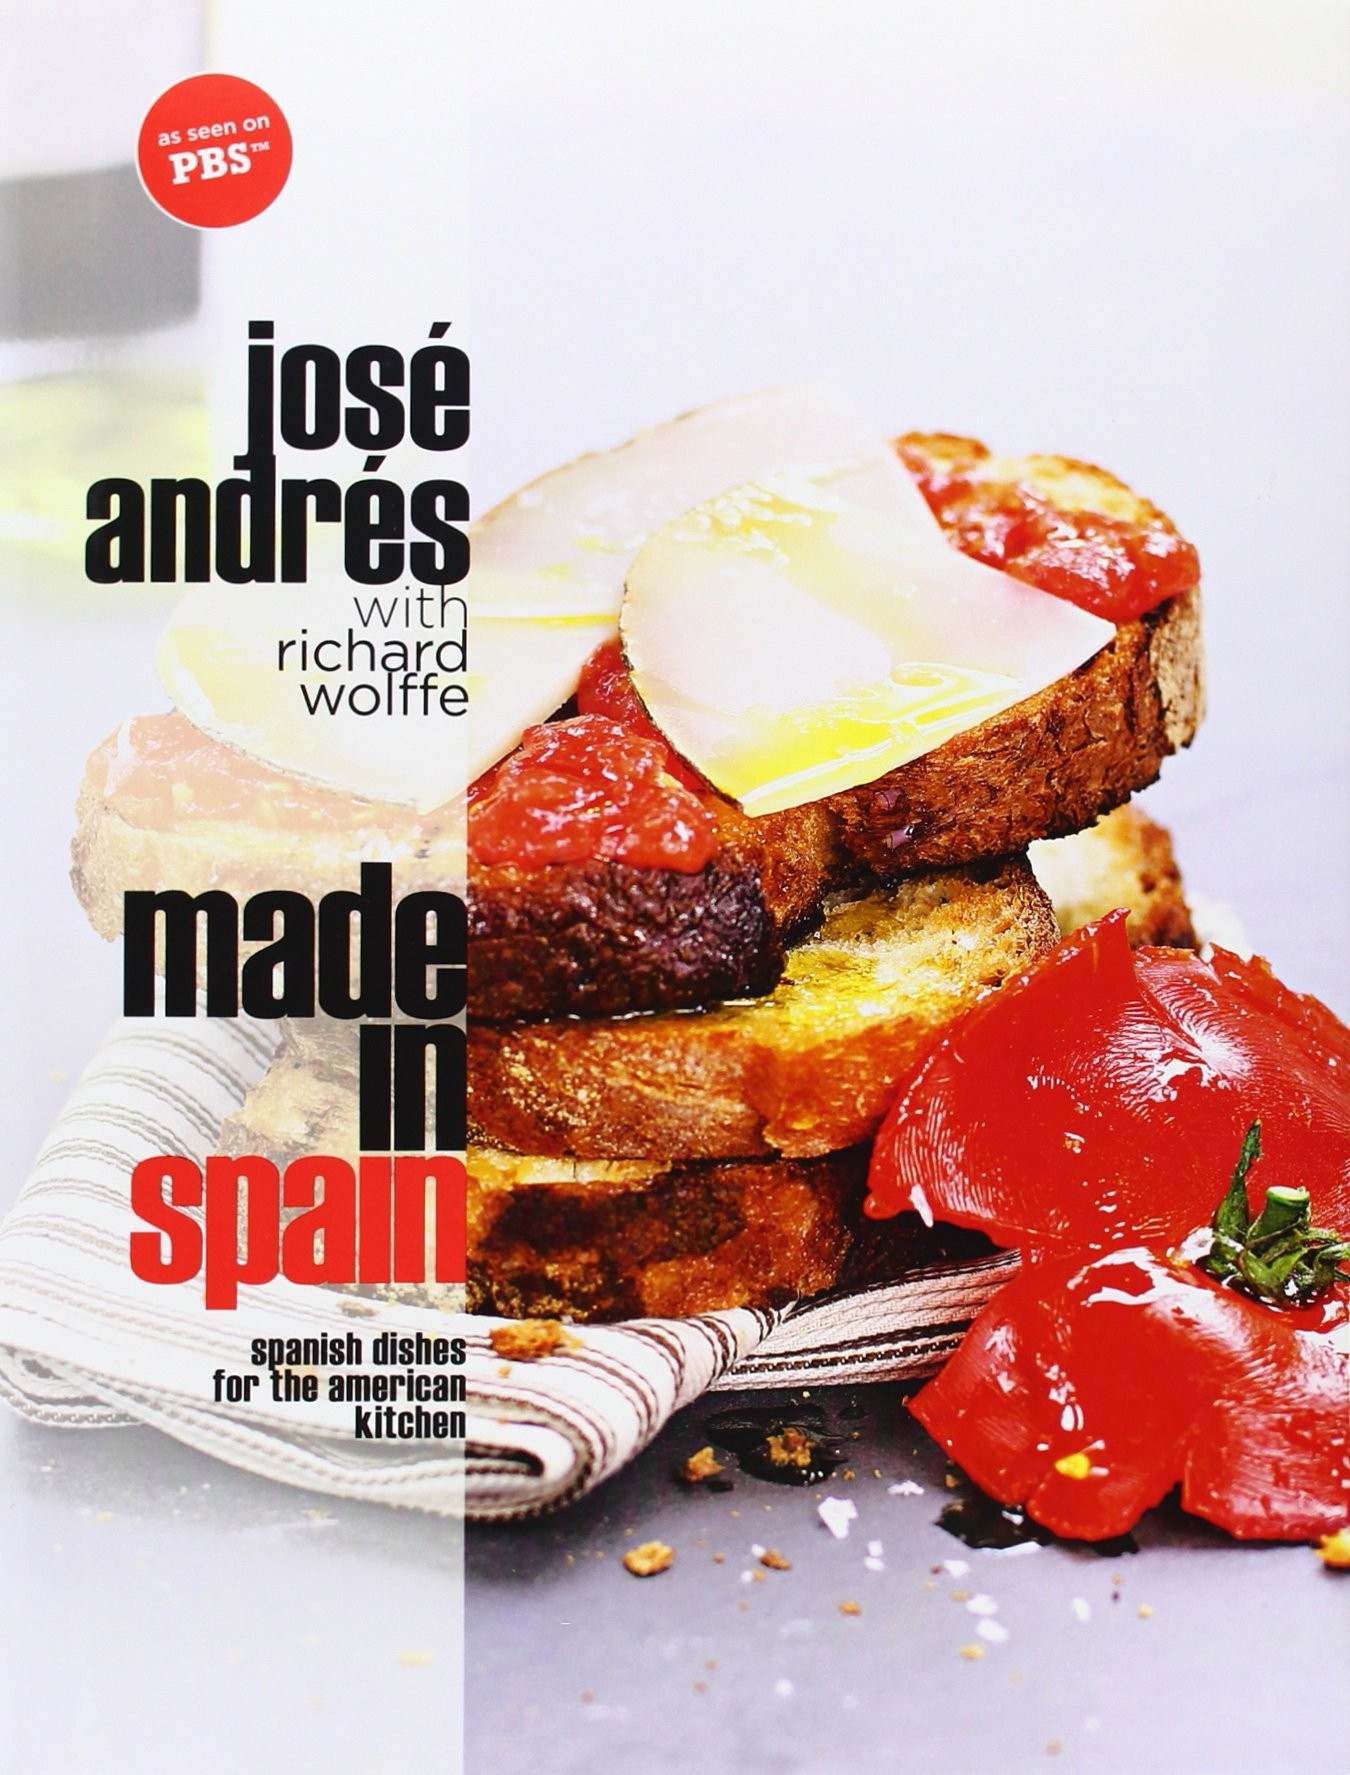 Made in Spain, by José Andrés